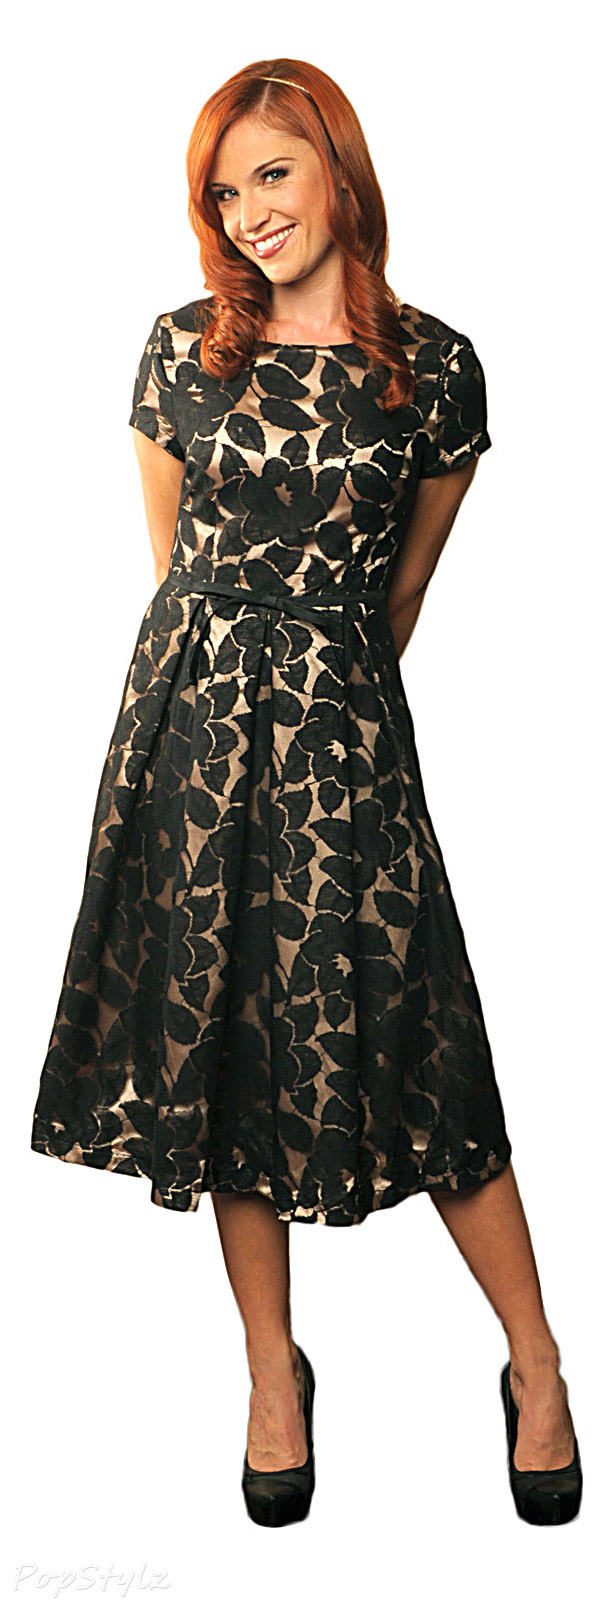 Mikarose Black Lace Dress - Renee